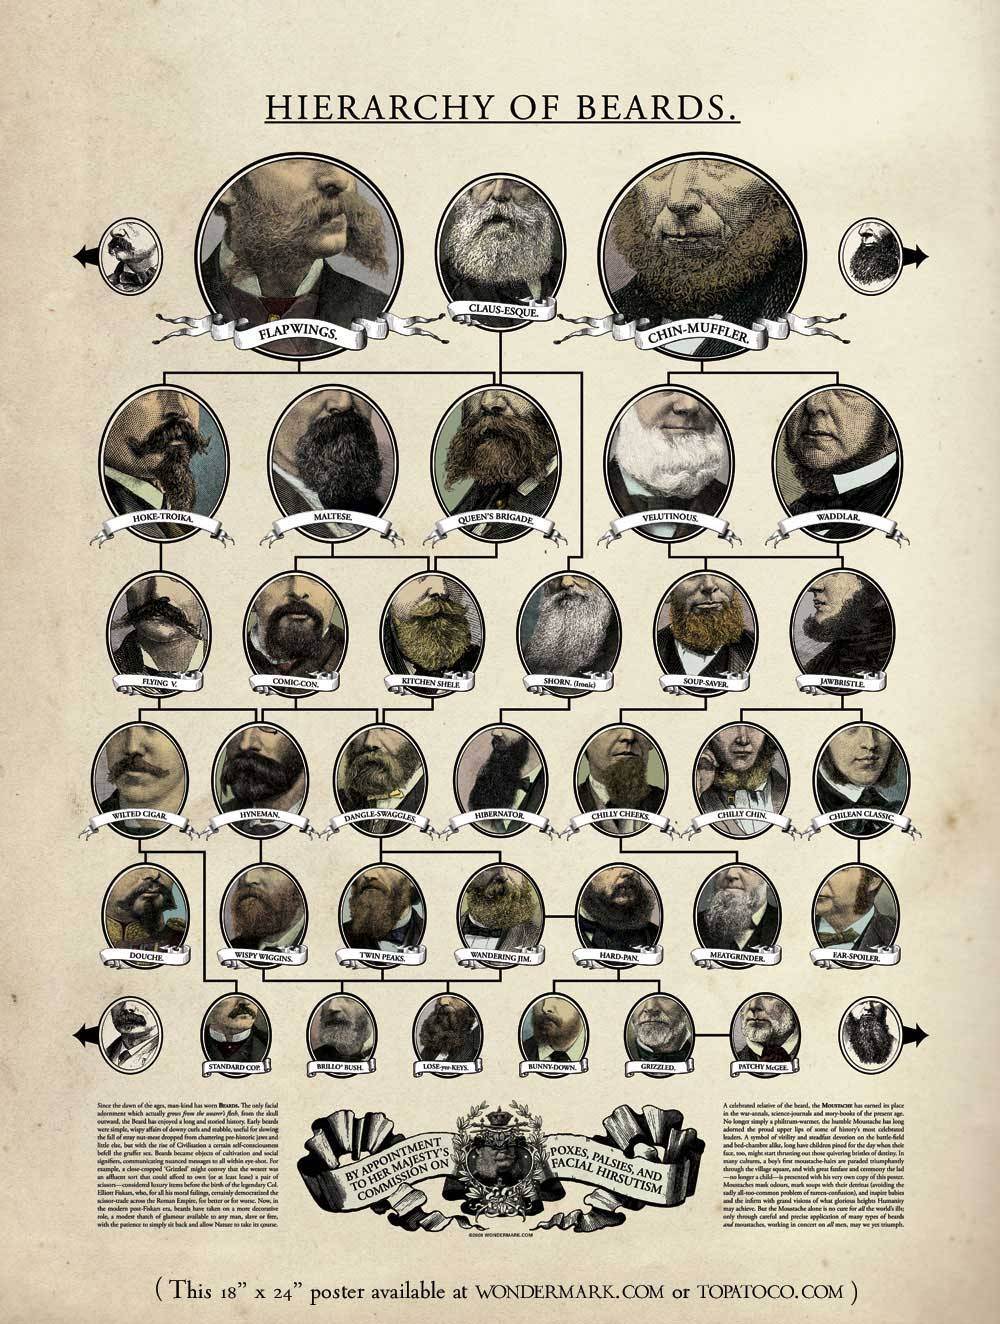 Hierarchy of Beards by Wondermark (poster available) full size